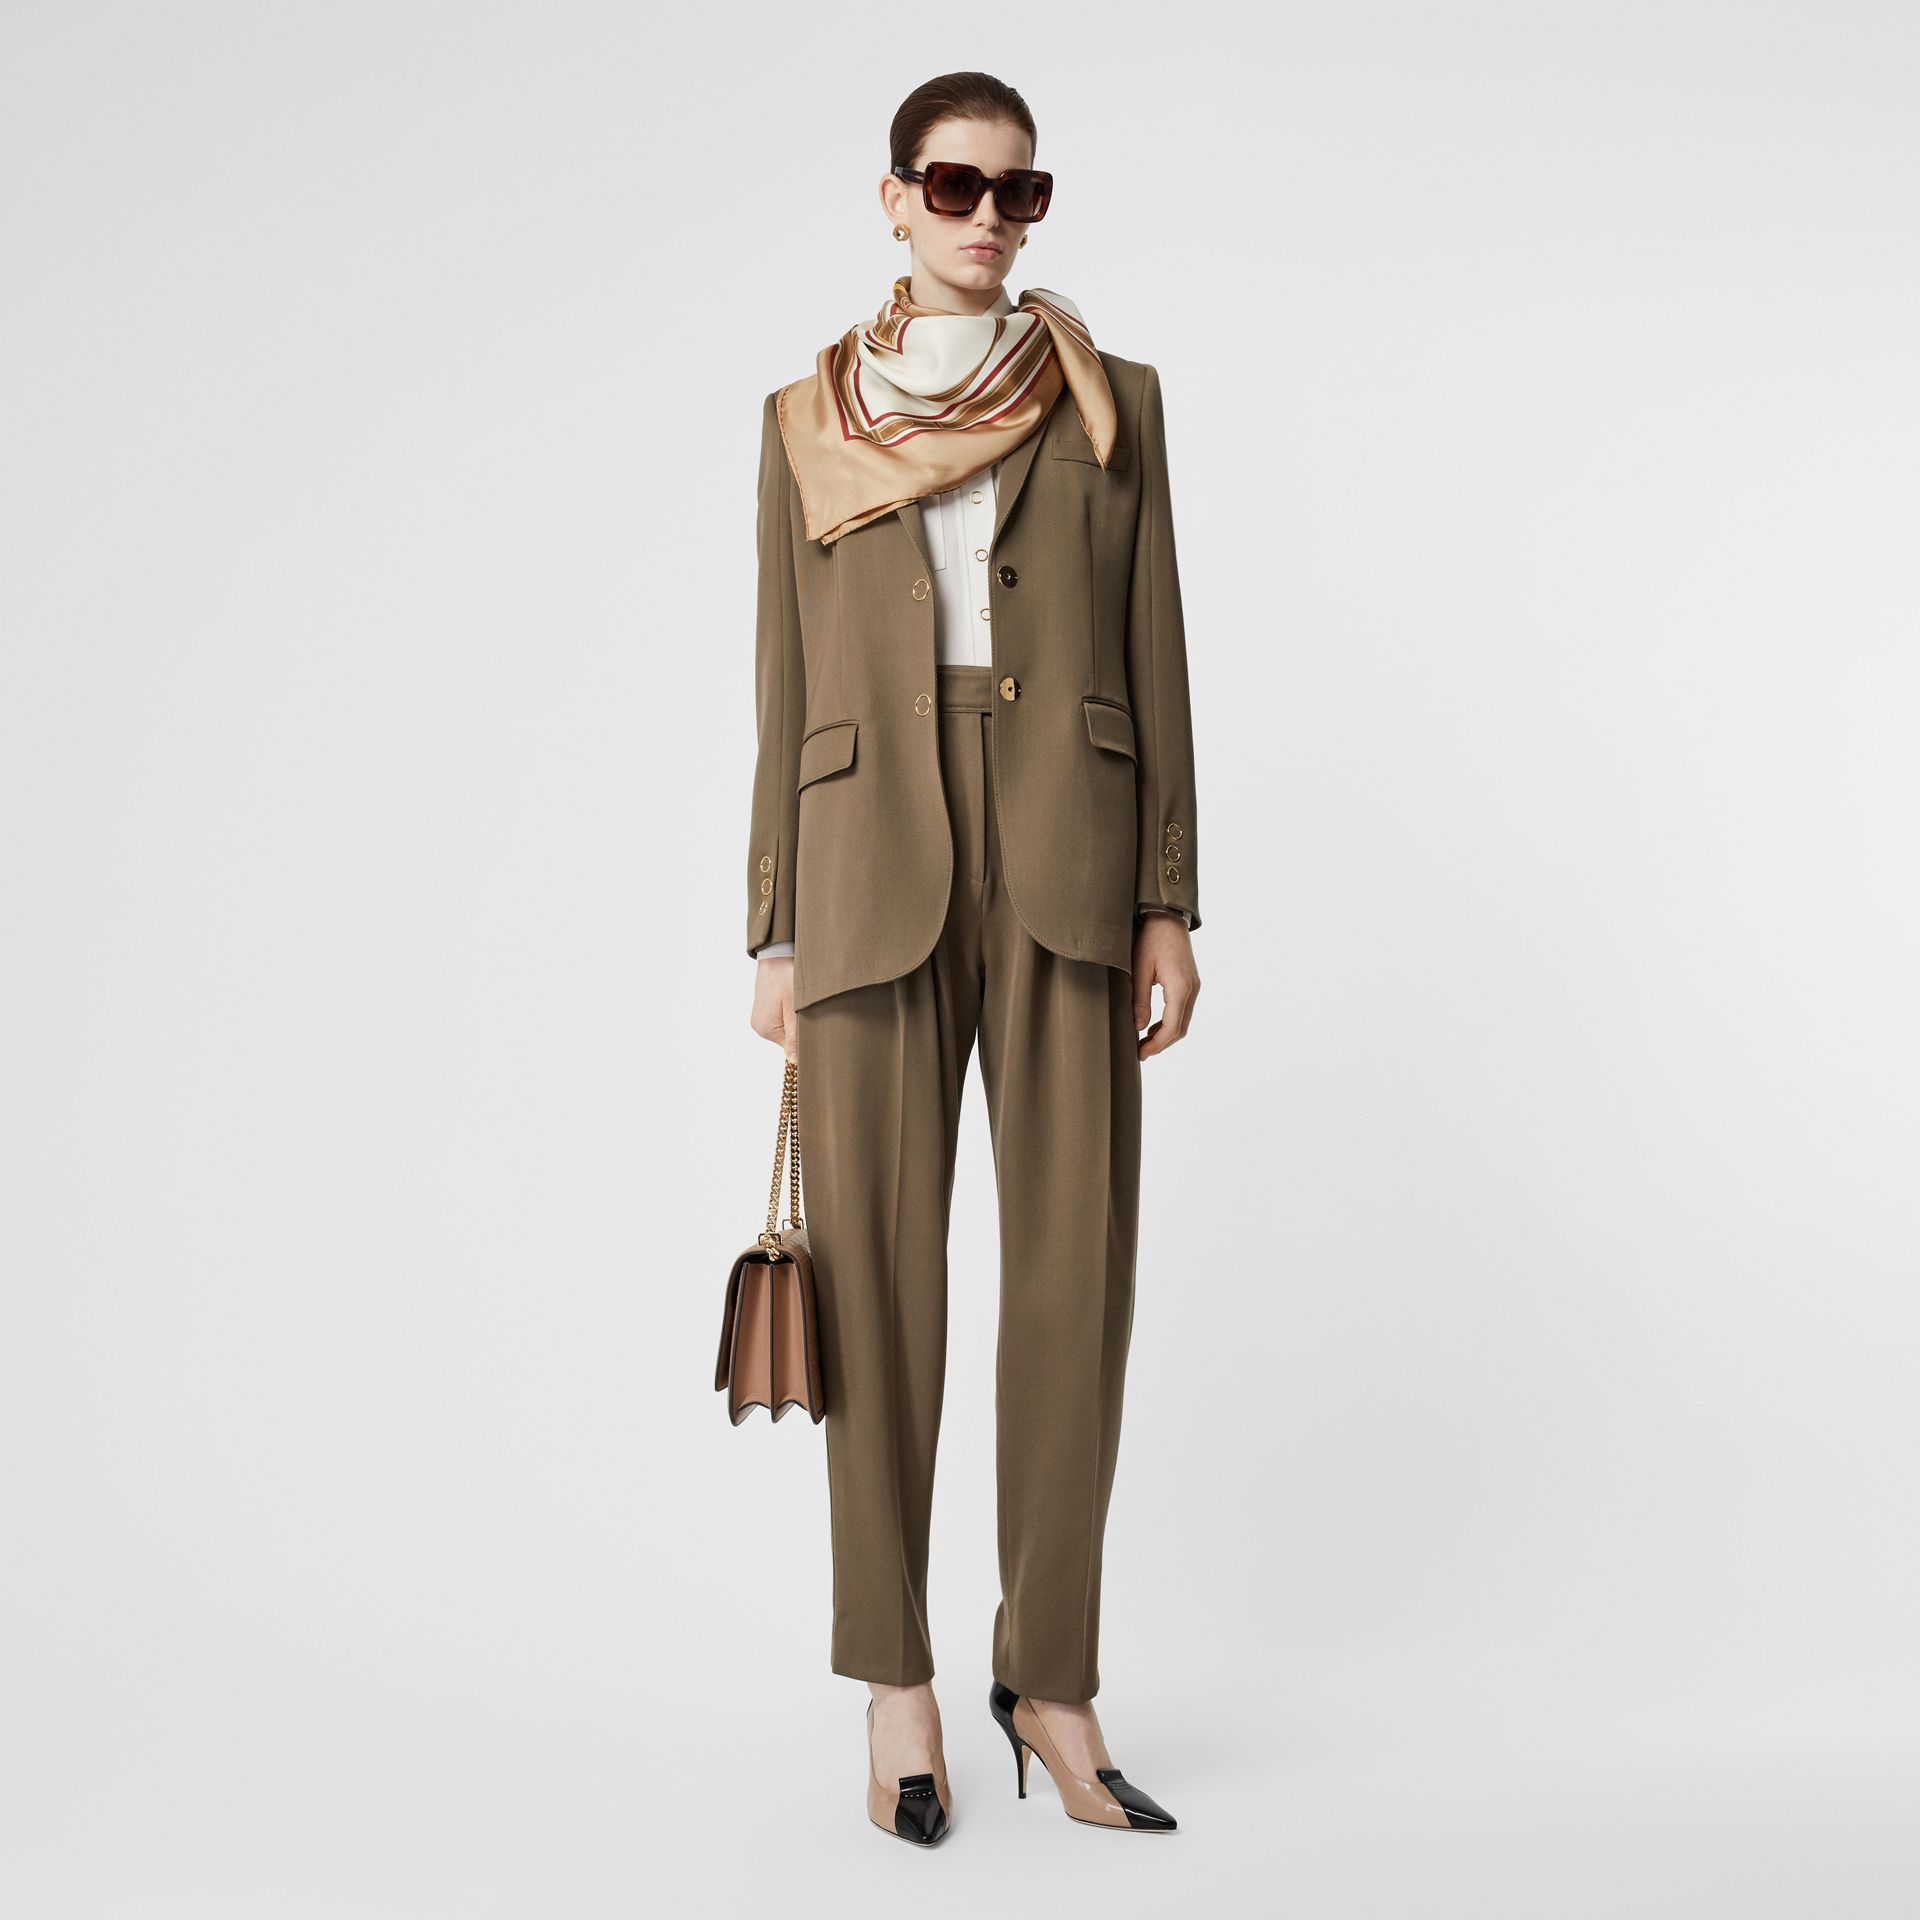 Archive Scarf Print Silk Square Scarf in Pale Camel | Burberry - gallery image 5